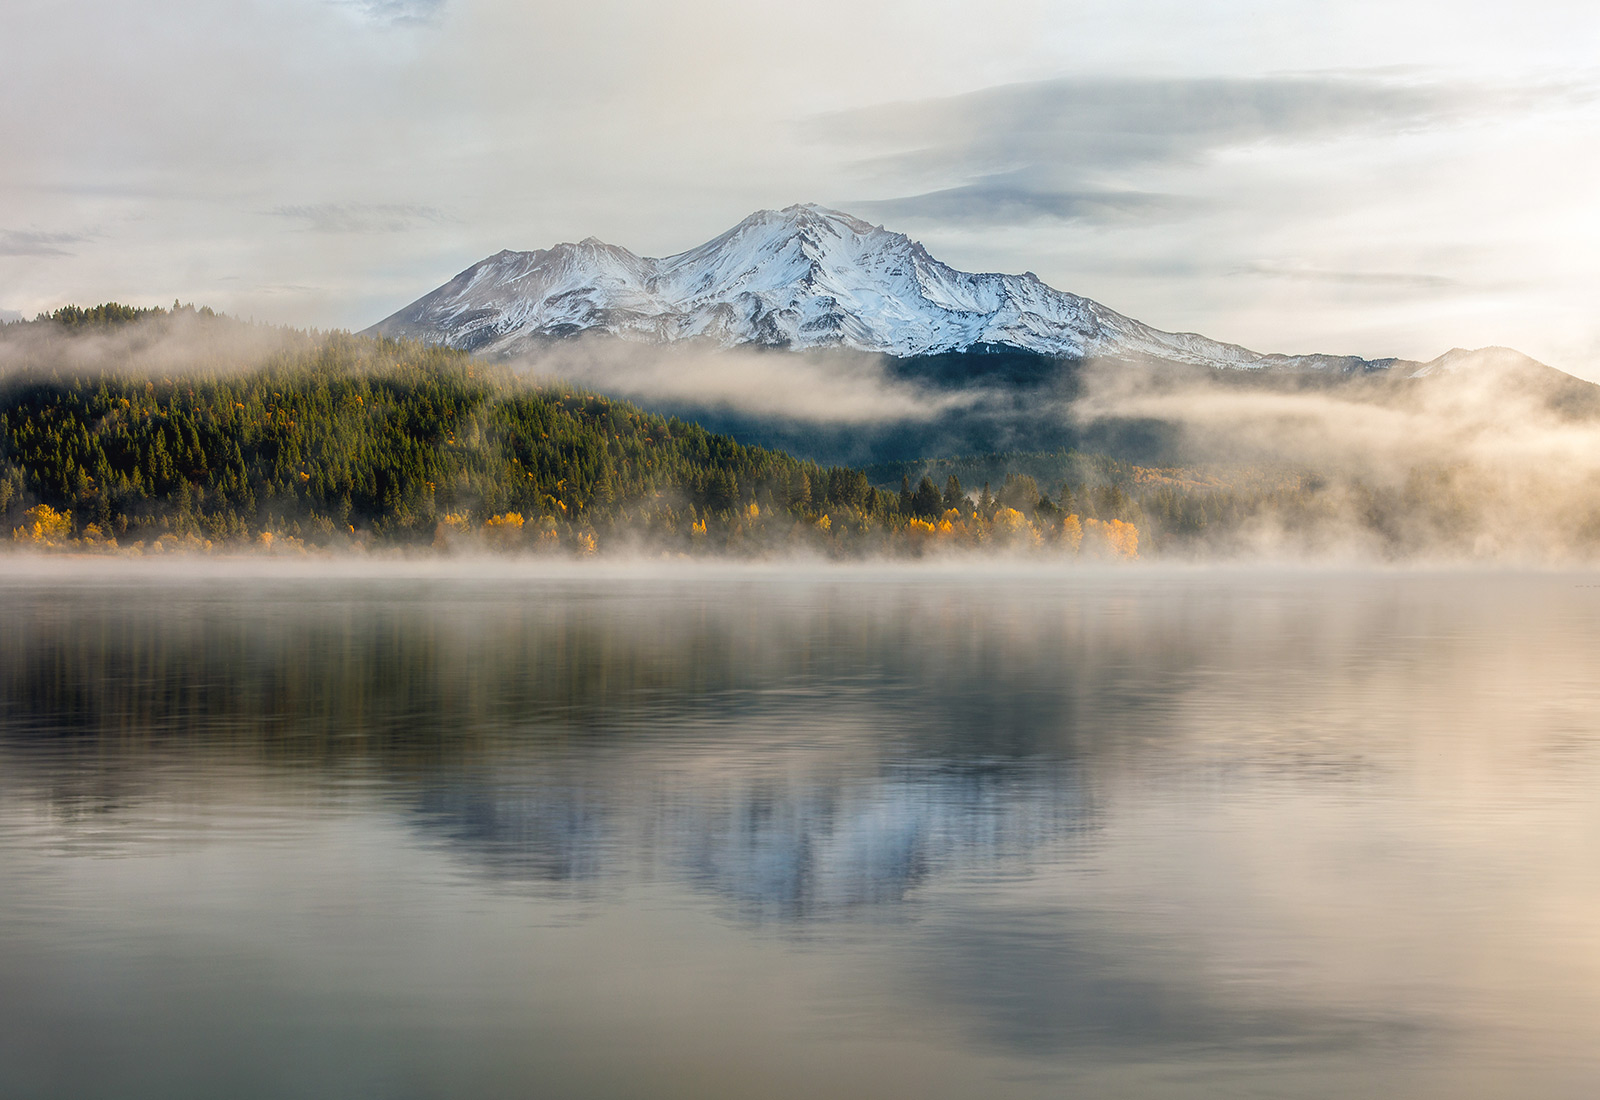 Sacred Journey to Mount Shasta - Mount Shasta Spiritual Retreat